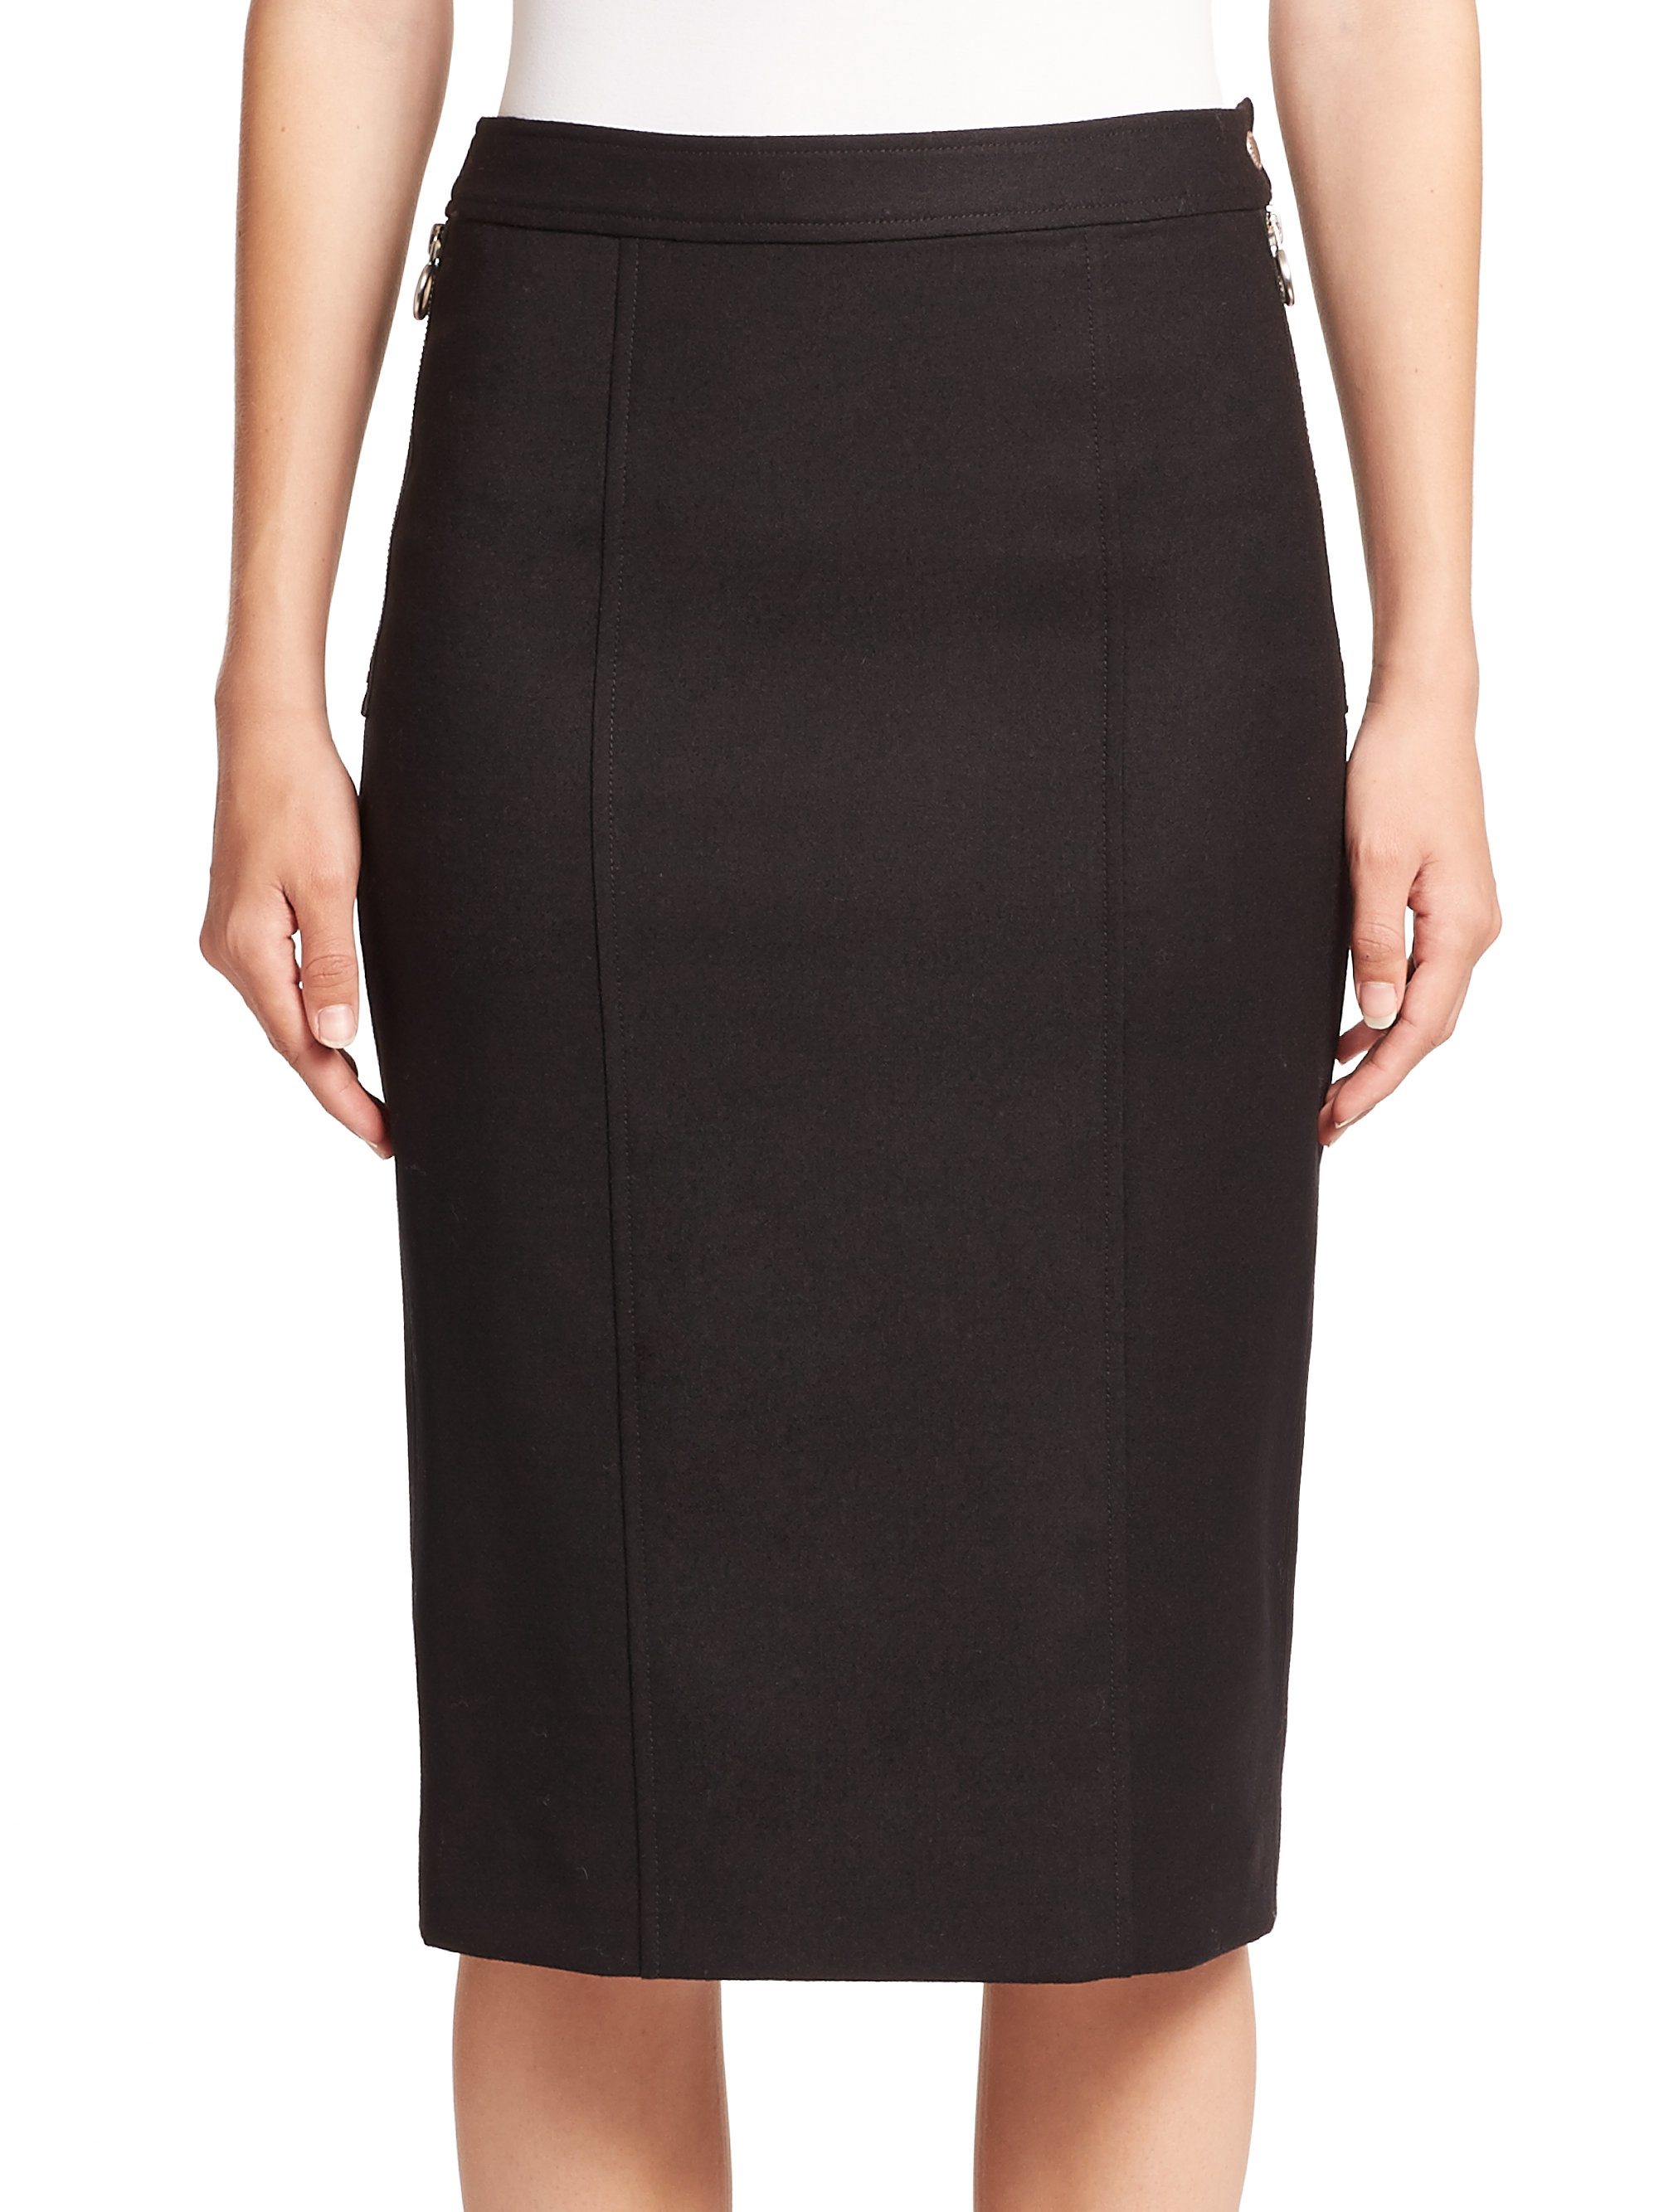 Marc by marc jacobs Stretch Wool Zip Pencil Skirt in Black | Lyst